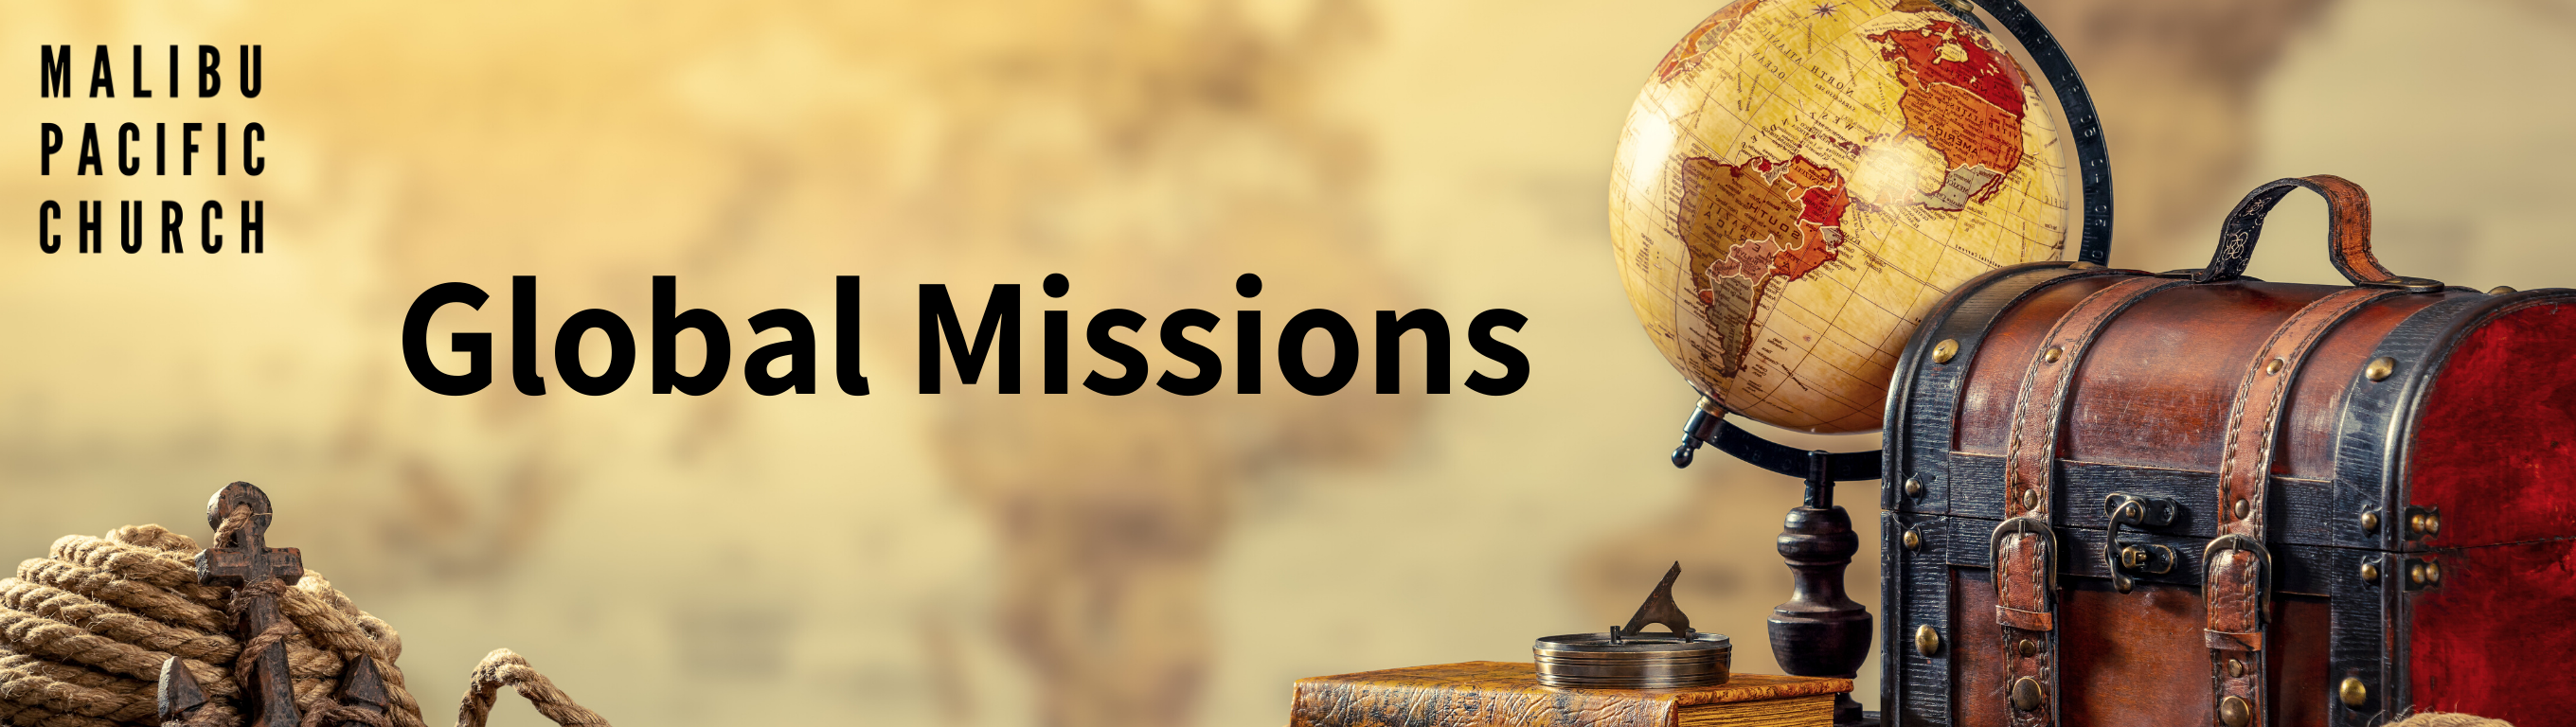 MPC Global Missions Banner